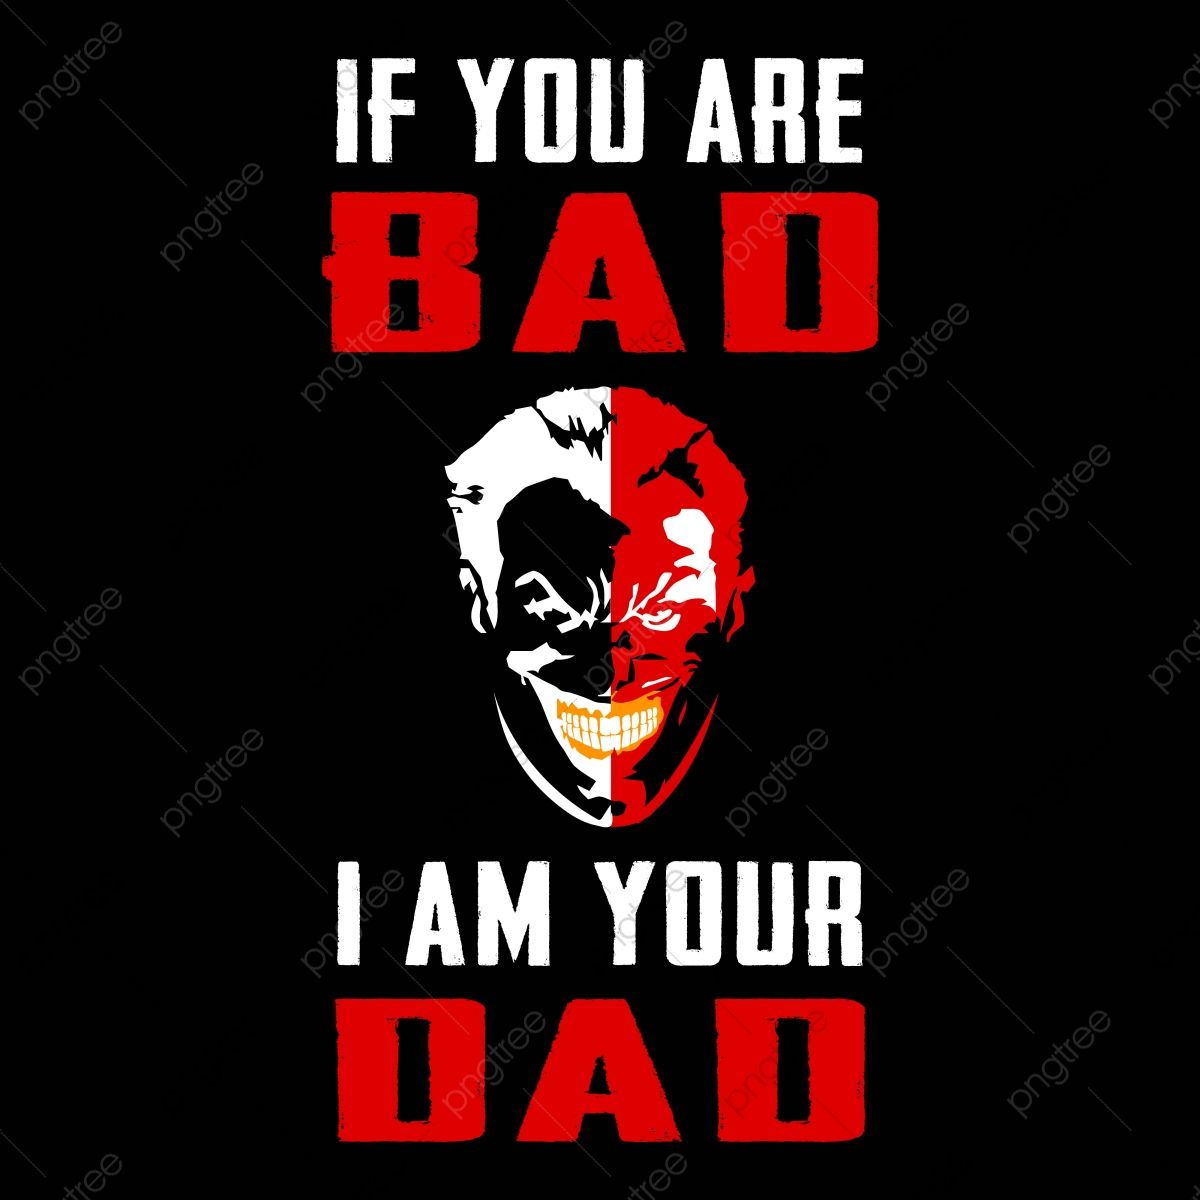 If You Are Bad I Am Your Dad T Shirt Design Template T Shirt Design Template S Love Images Dad Images A collection of the top 29 jackboys wallpapers and backgrounds available for download for free. if you are bad i am your dad t shirt